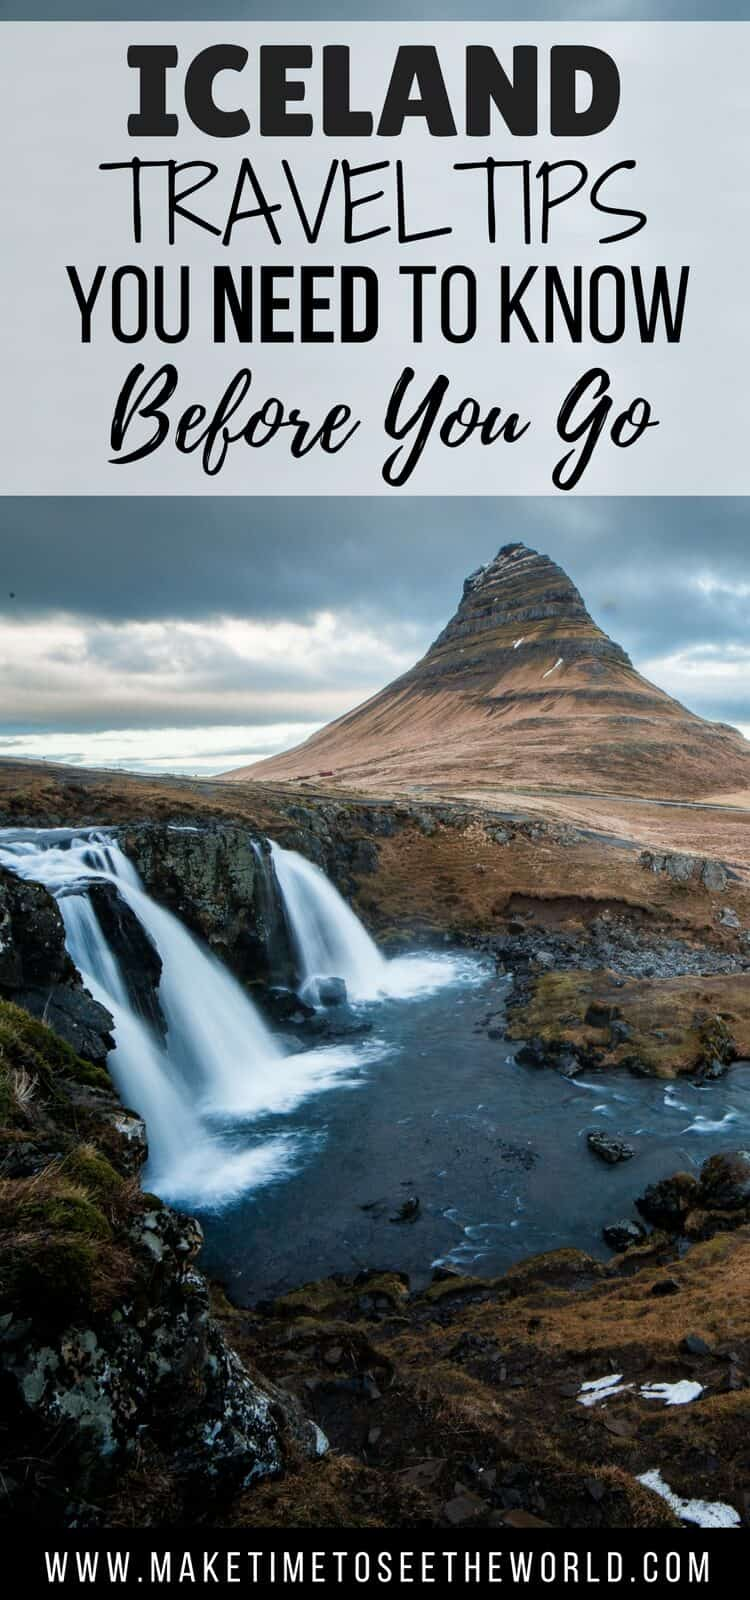 Iceland packages